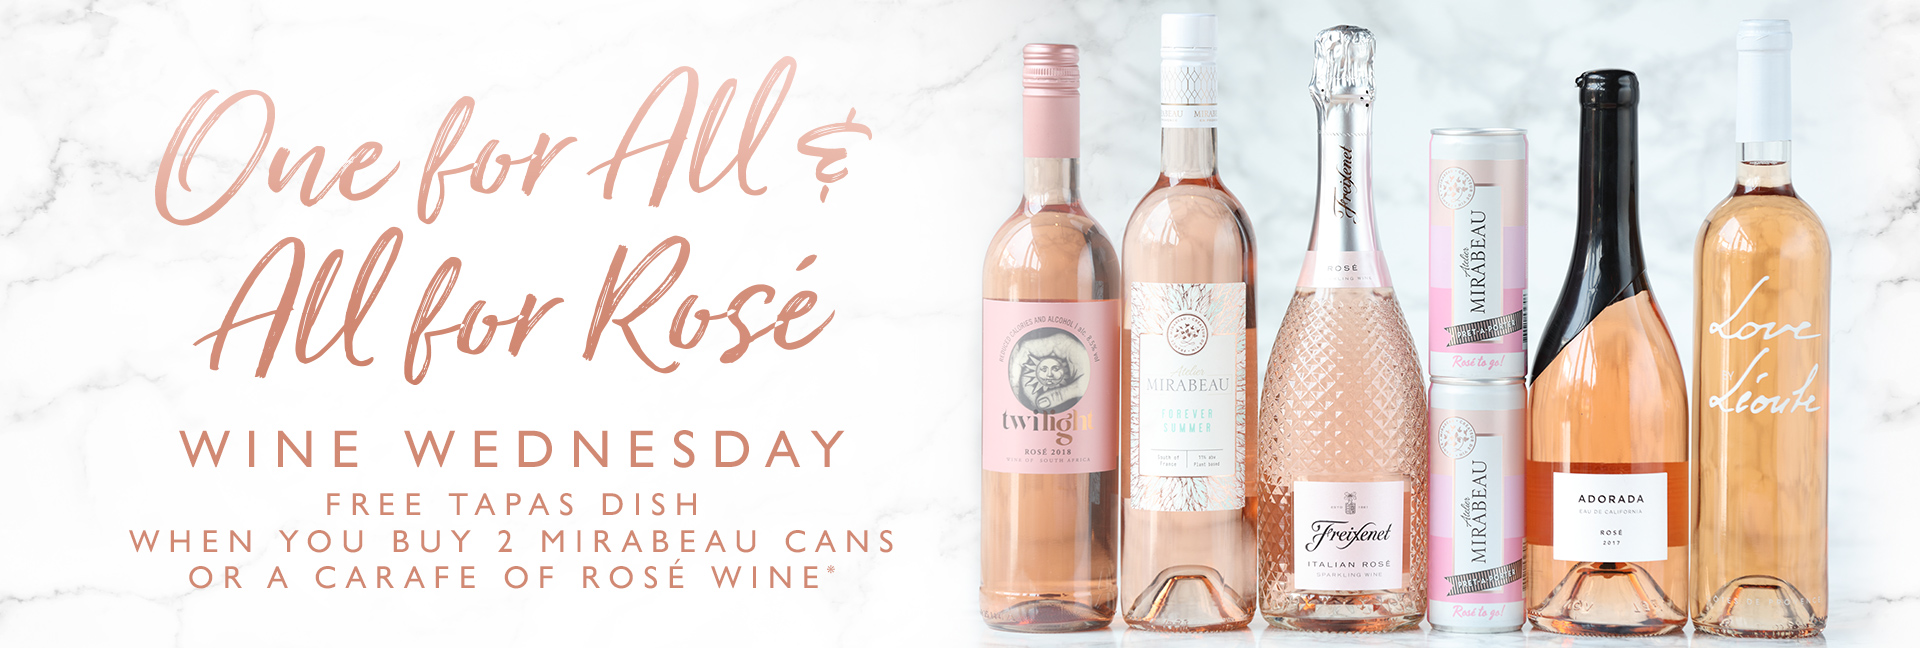 Wine Wednesday at All Bar One Sheffield